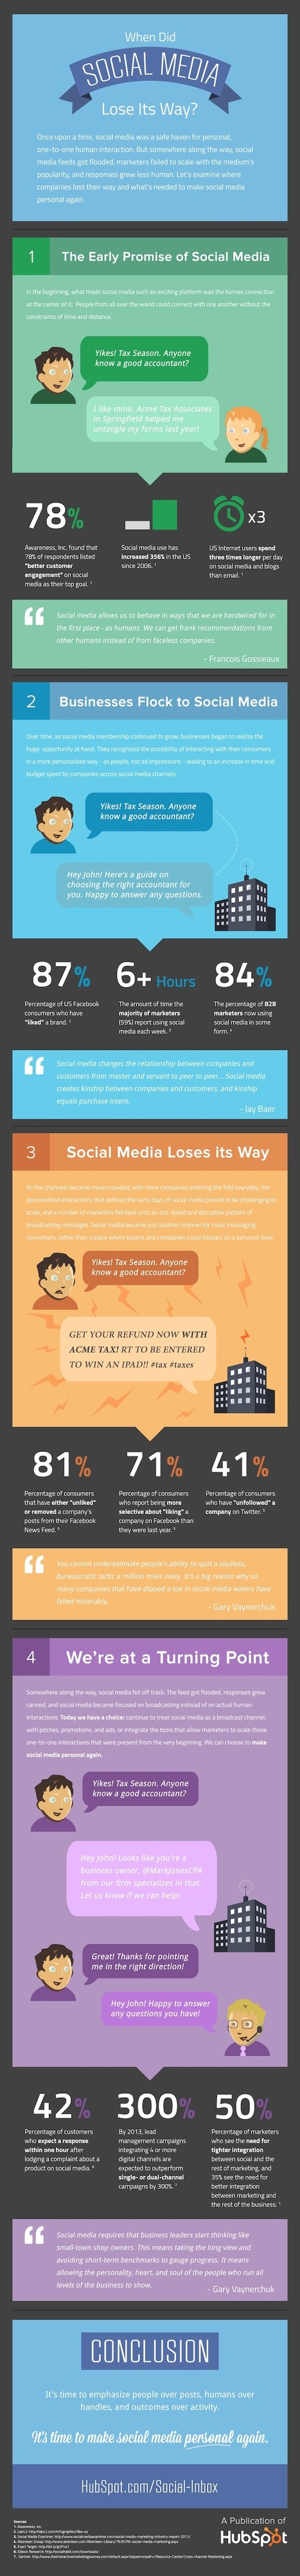 When Did Social Media Lose Its Way? [Infographic] - Profs | Social Media & Marketing | Scoop.it